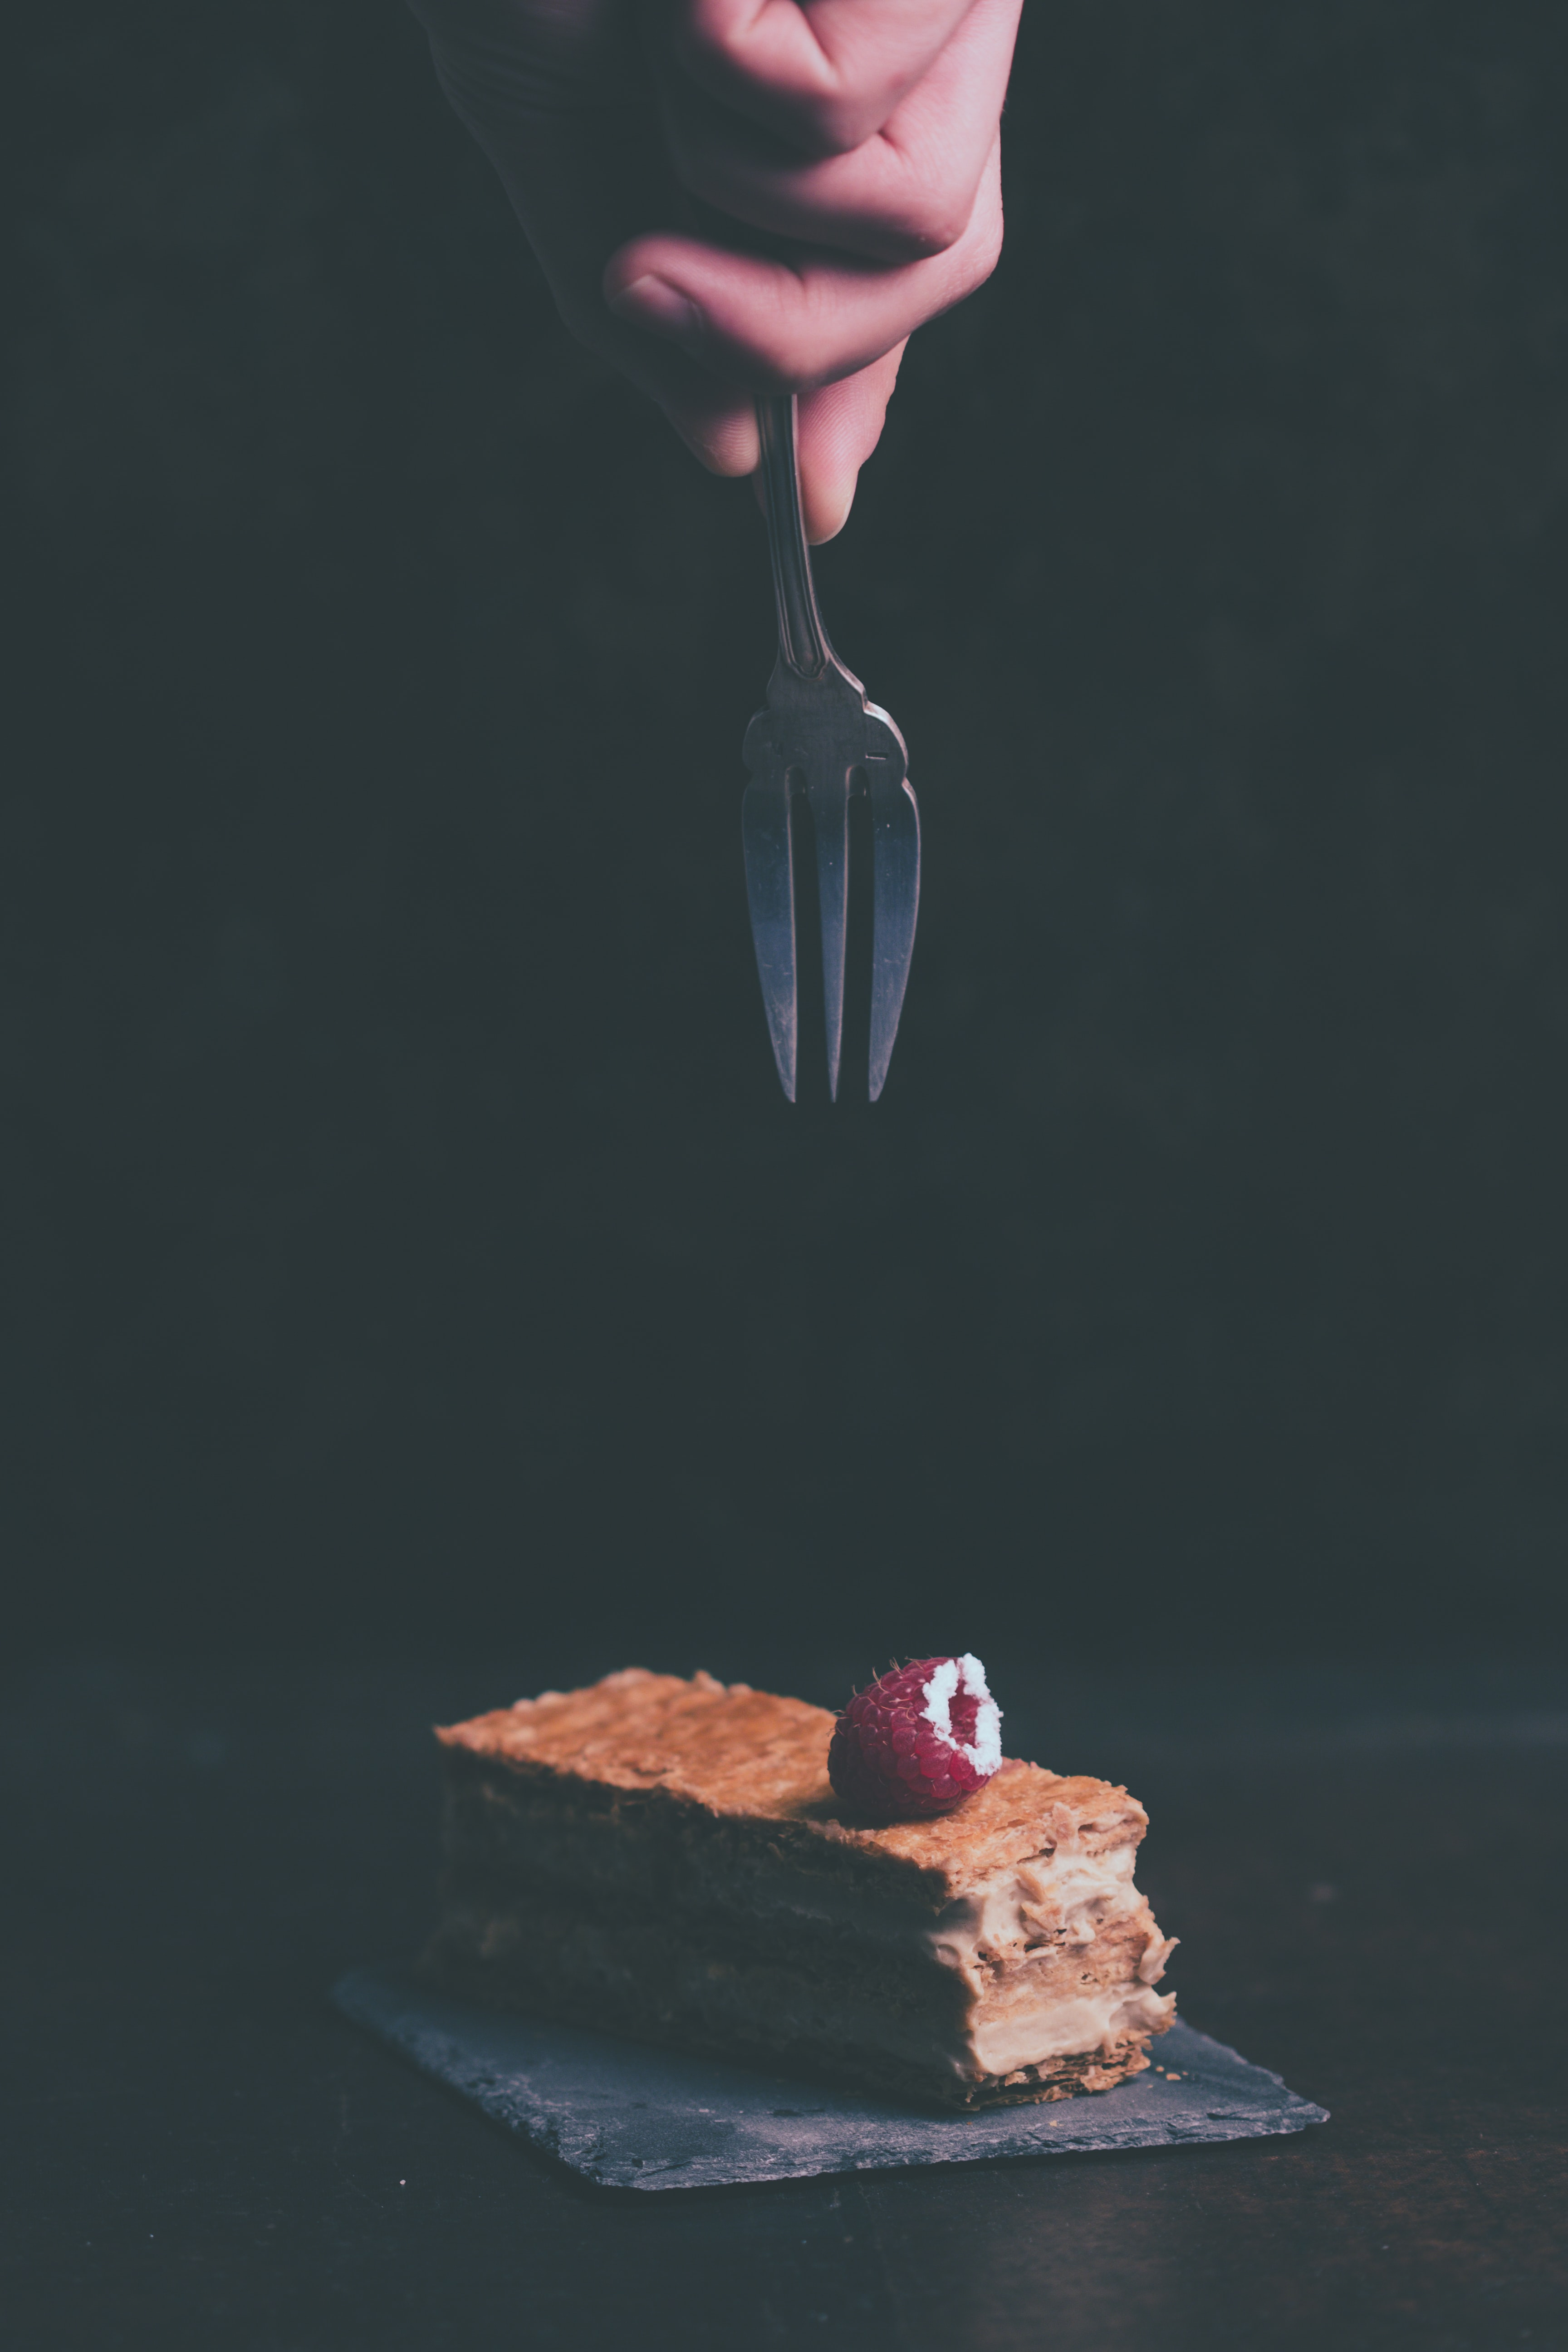 person holding fork about to grab cake